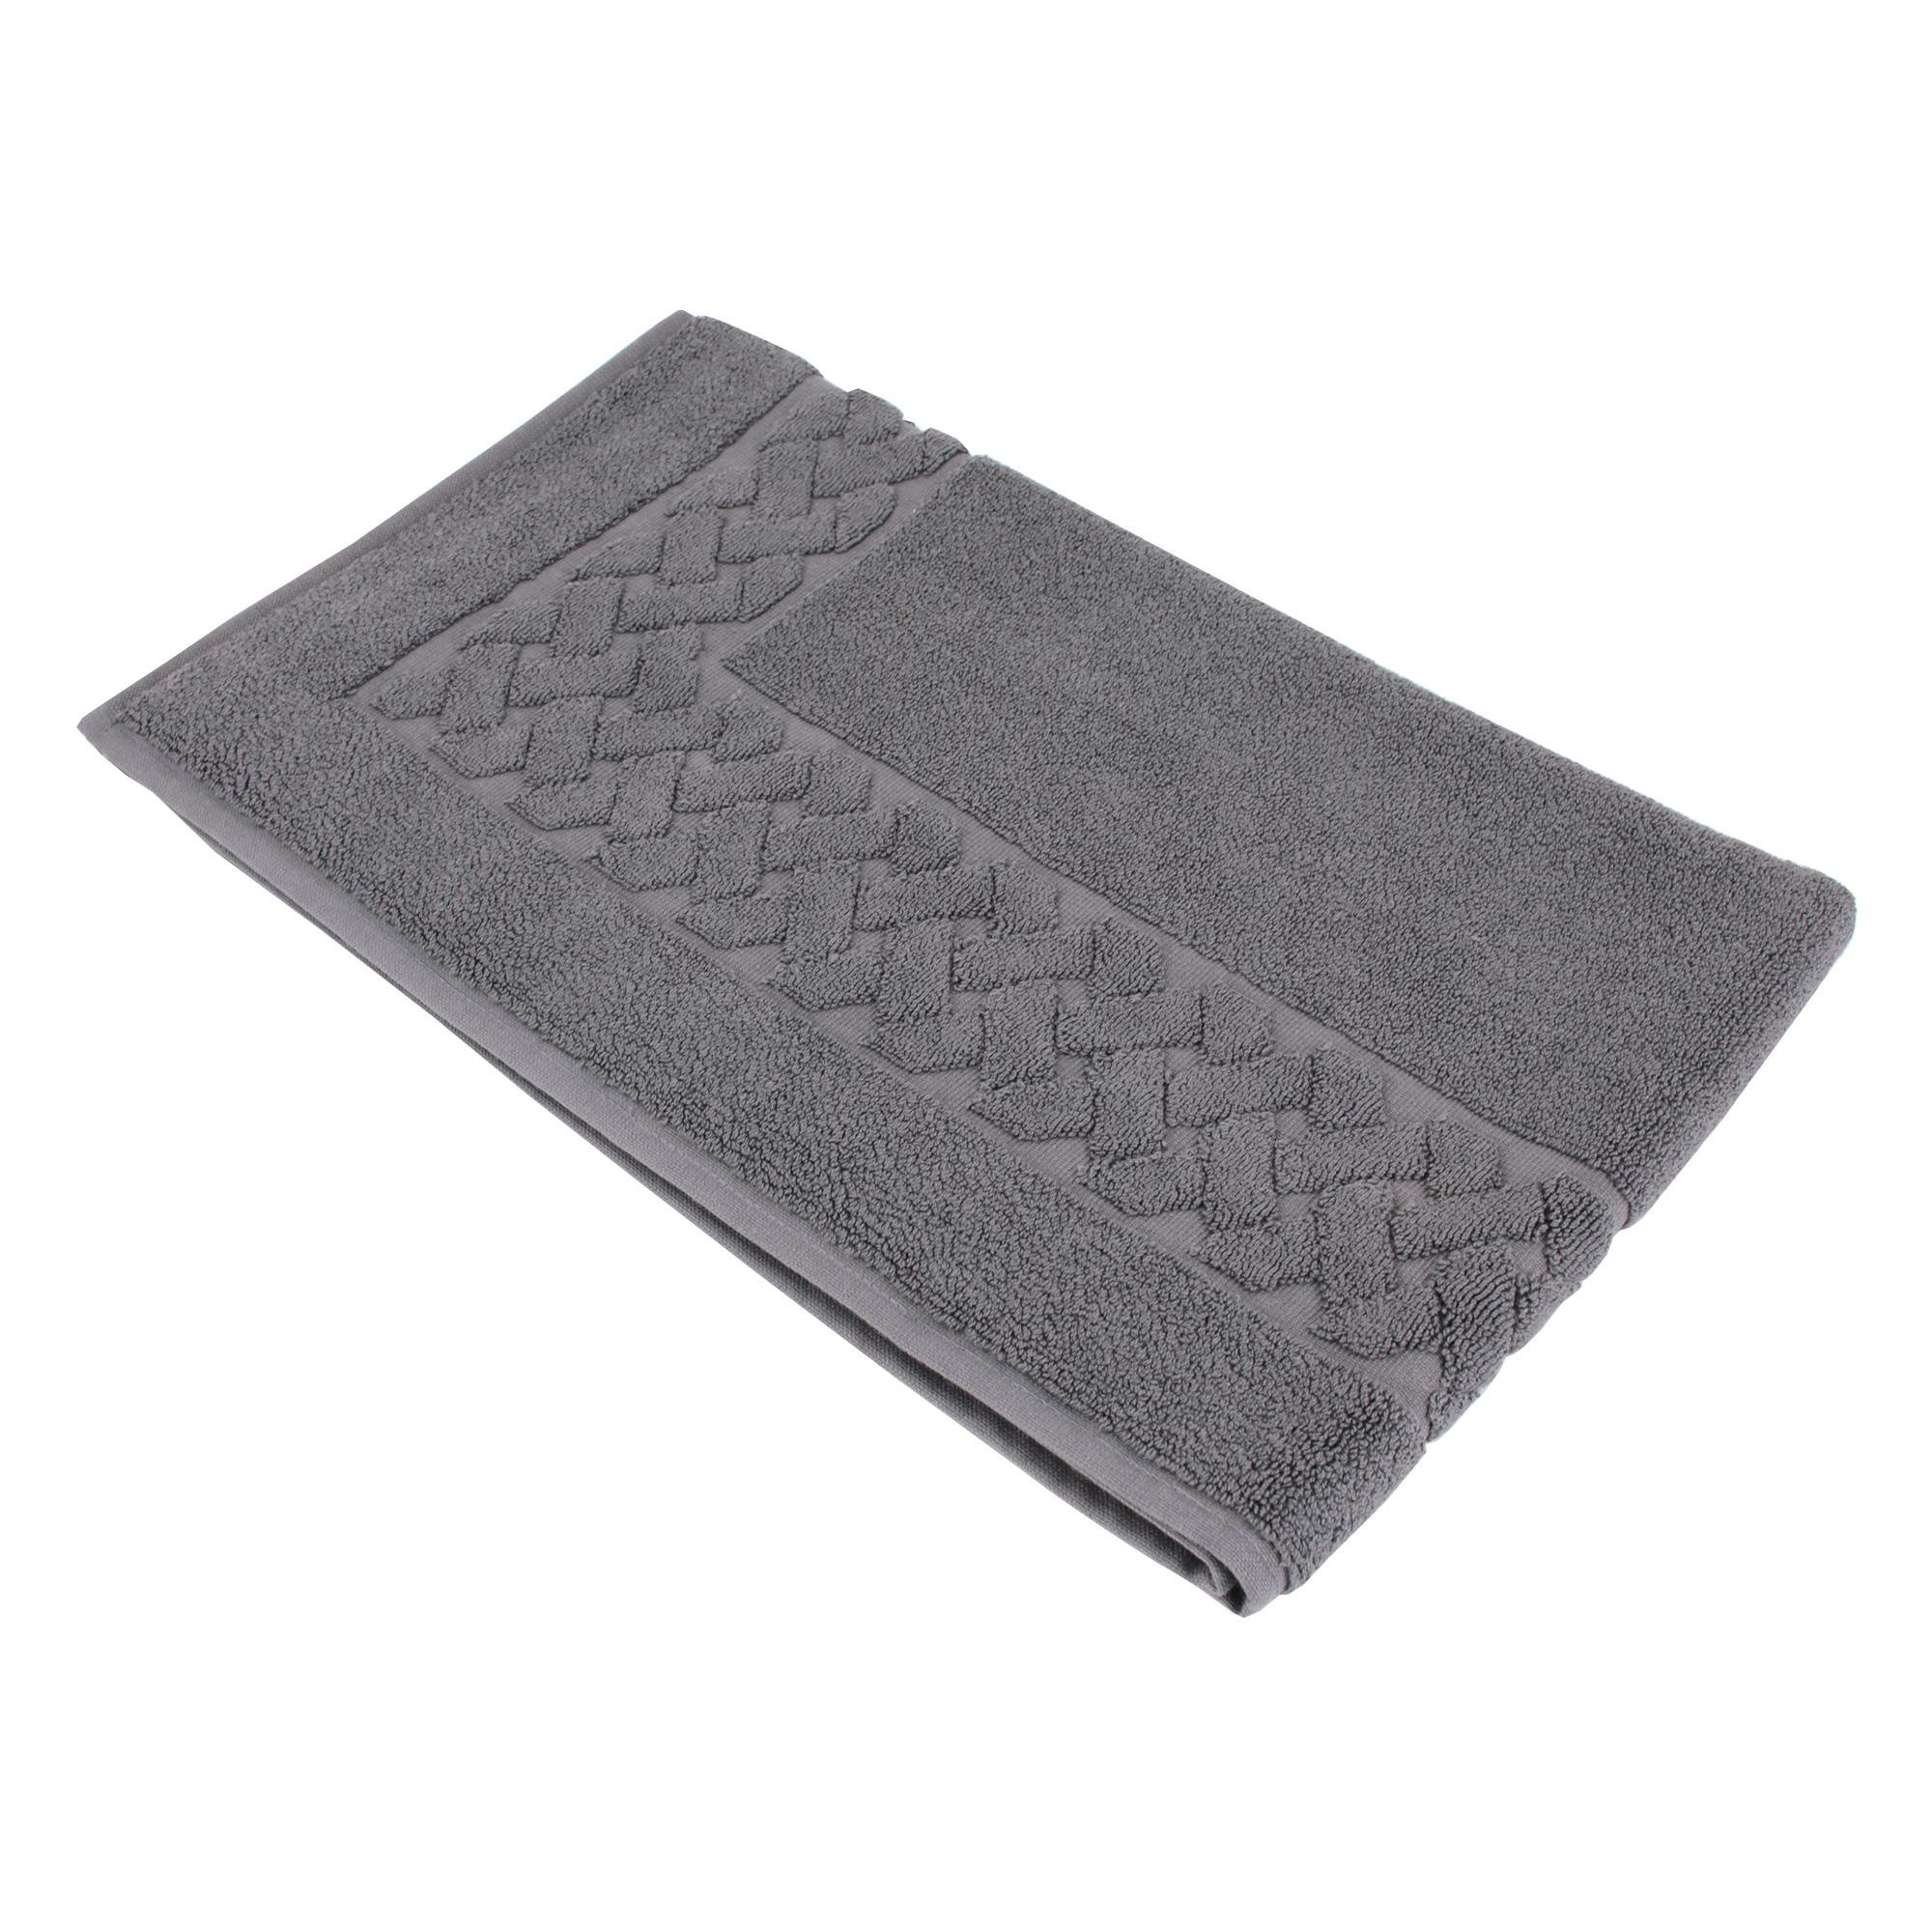 tapis de bain 50x80 royal cresent gris acier 850g m2 ebay. Black Bedroom Furniture Sets. Home Design Ideas